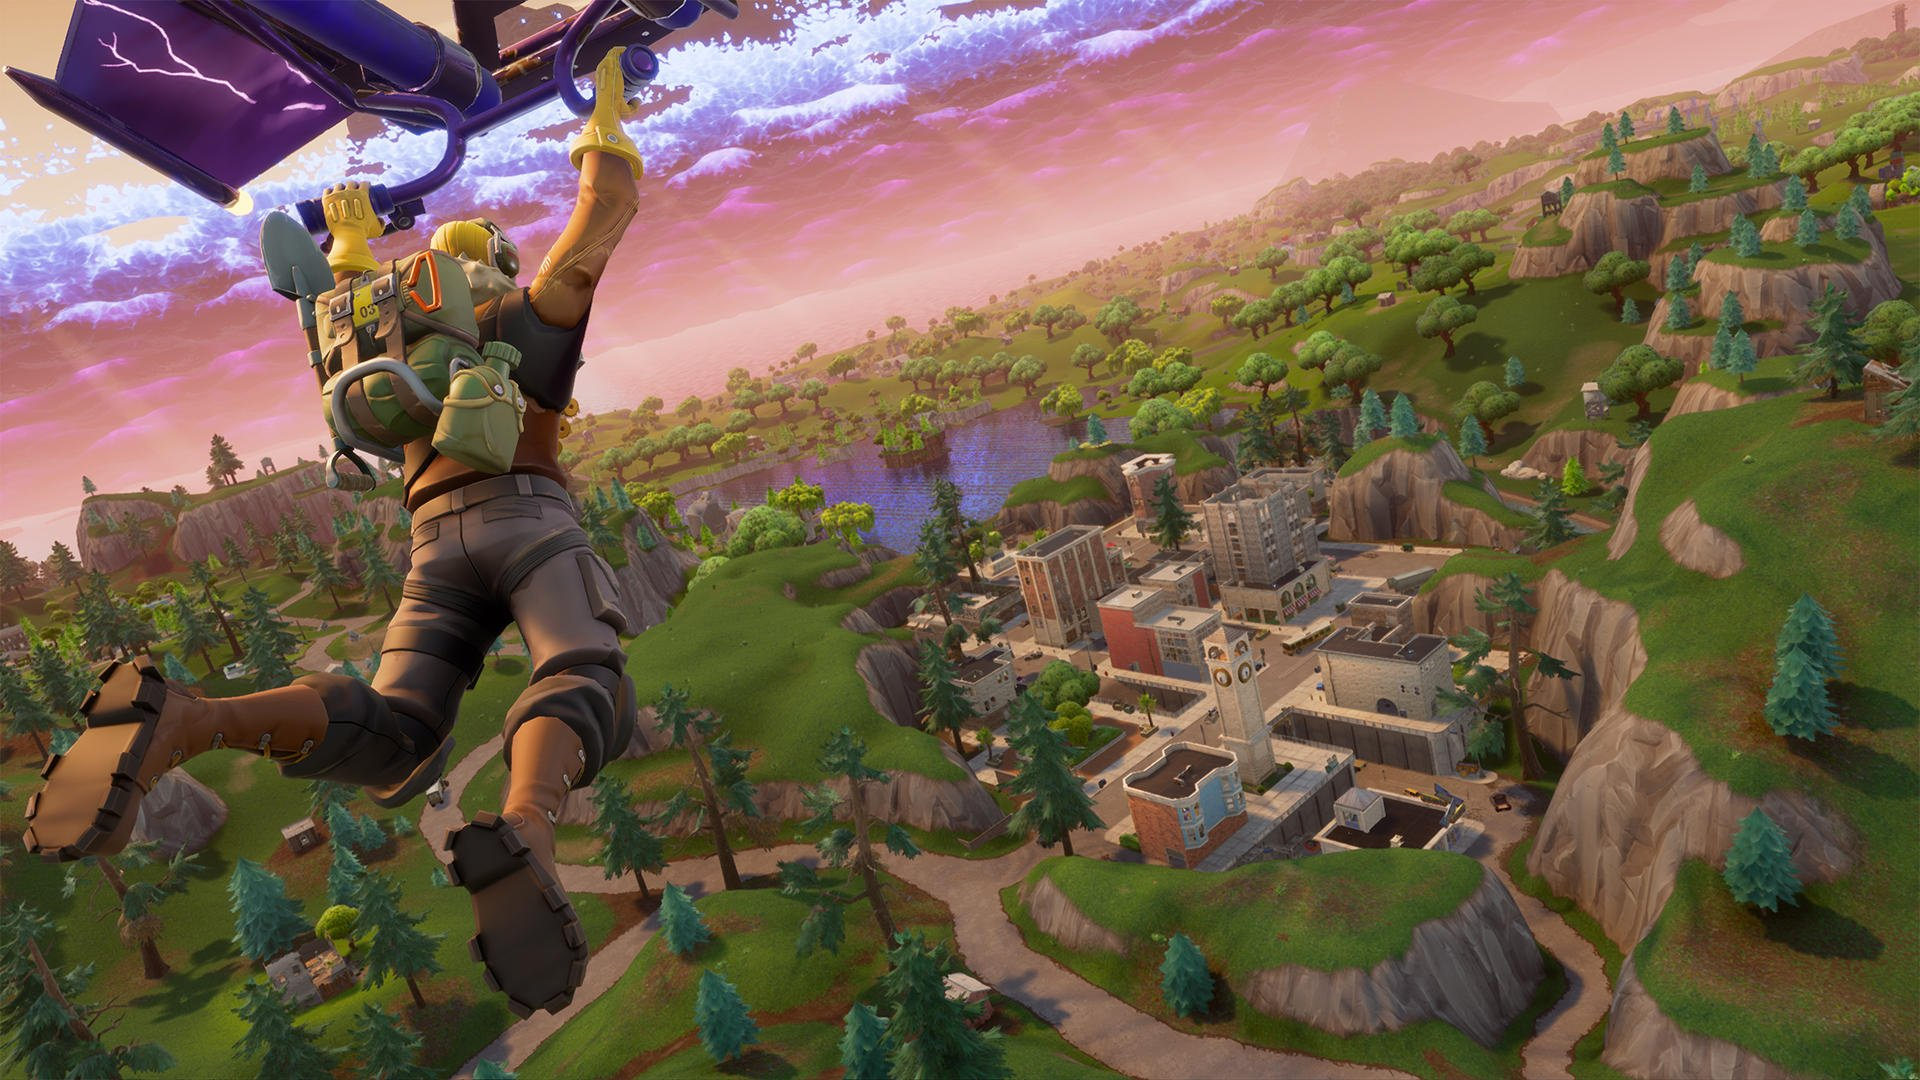 fortnite moisty mire treasure map and where to find the treasure in retail row 1 - fortnite wallpaper retail row